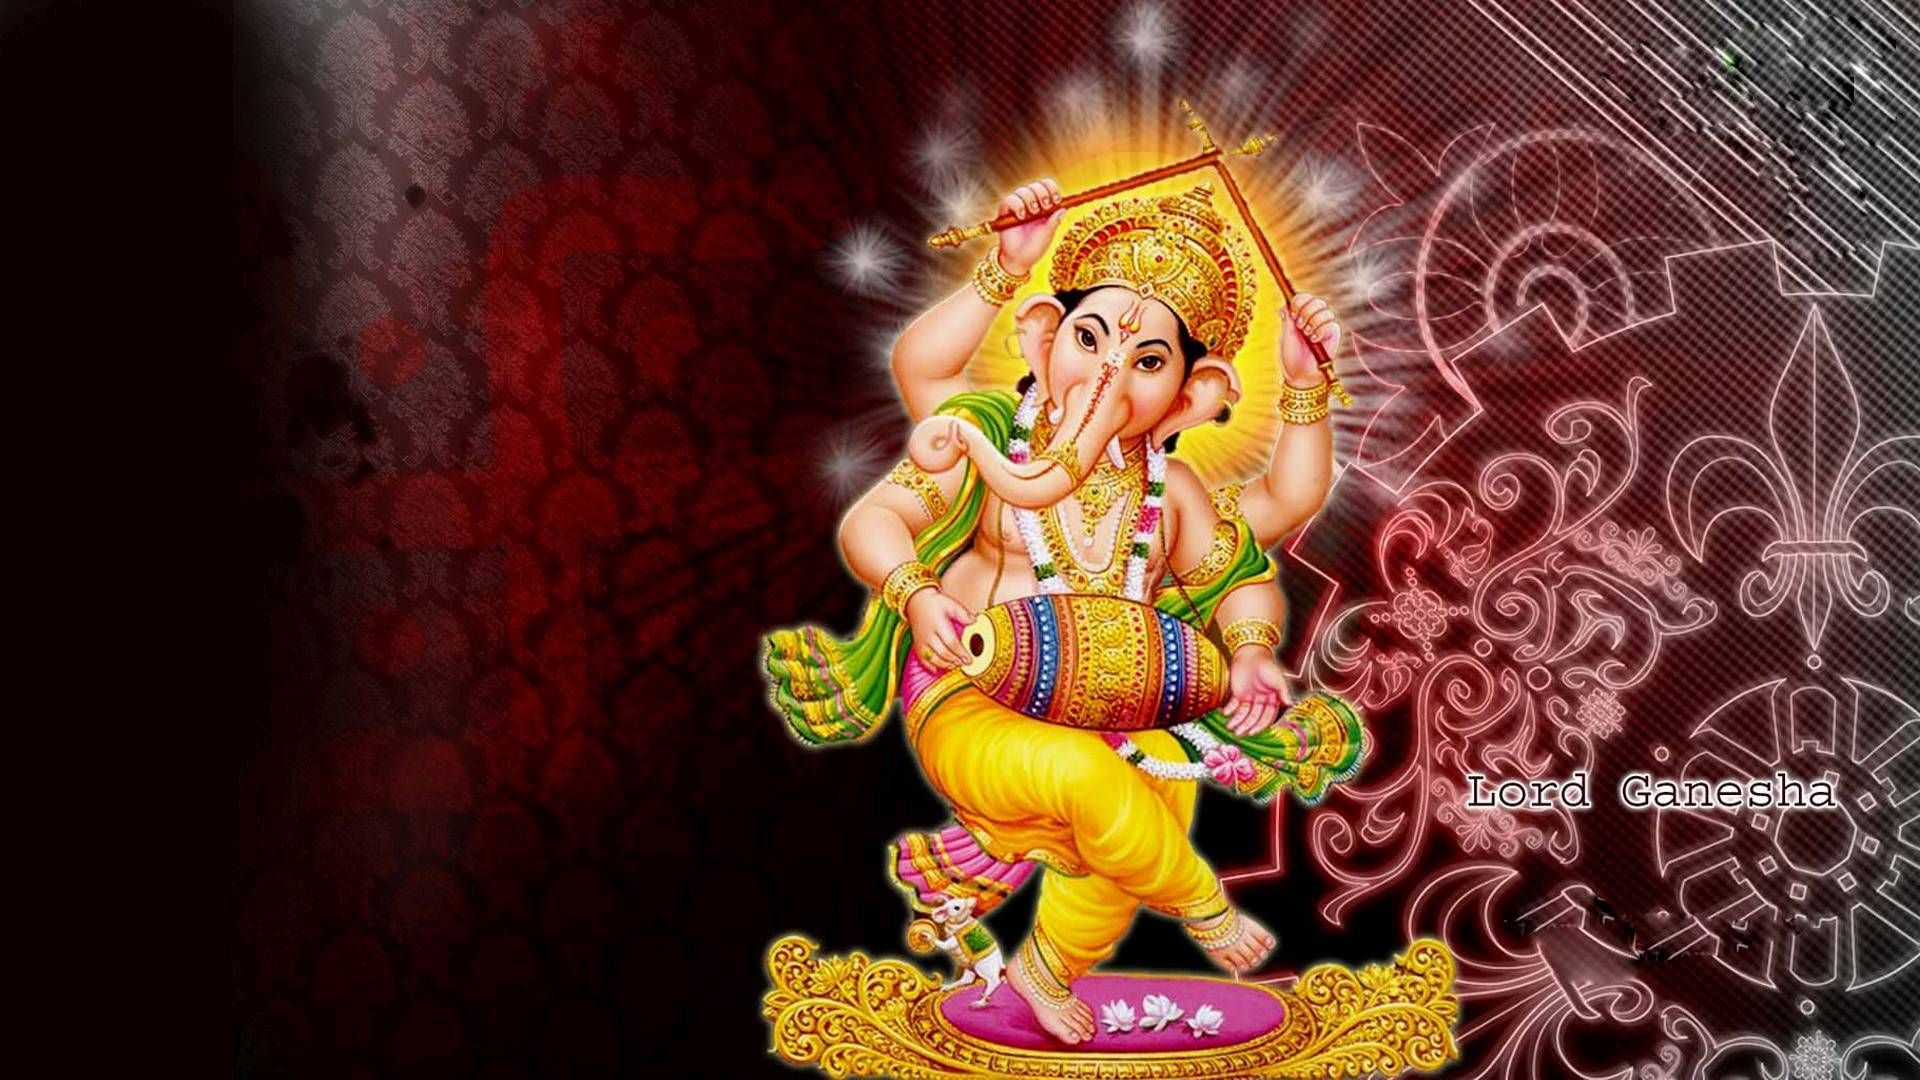 Lord Ganesha 1080p Hindu God Hd Desktop Wallpapers Religious Wallpaper